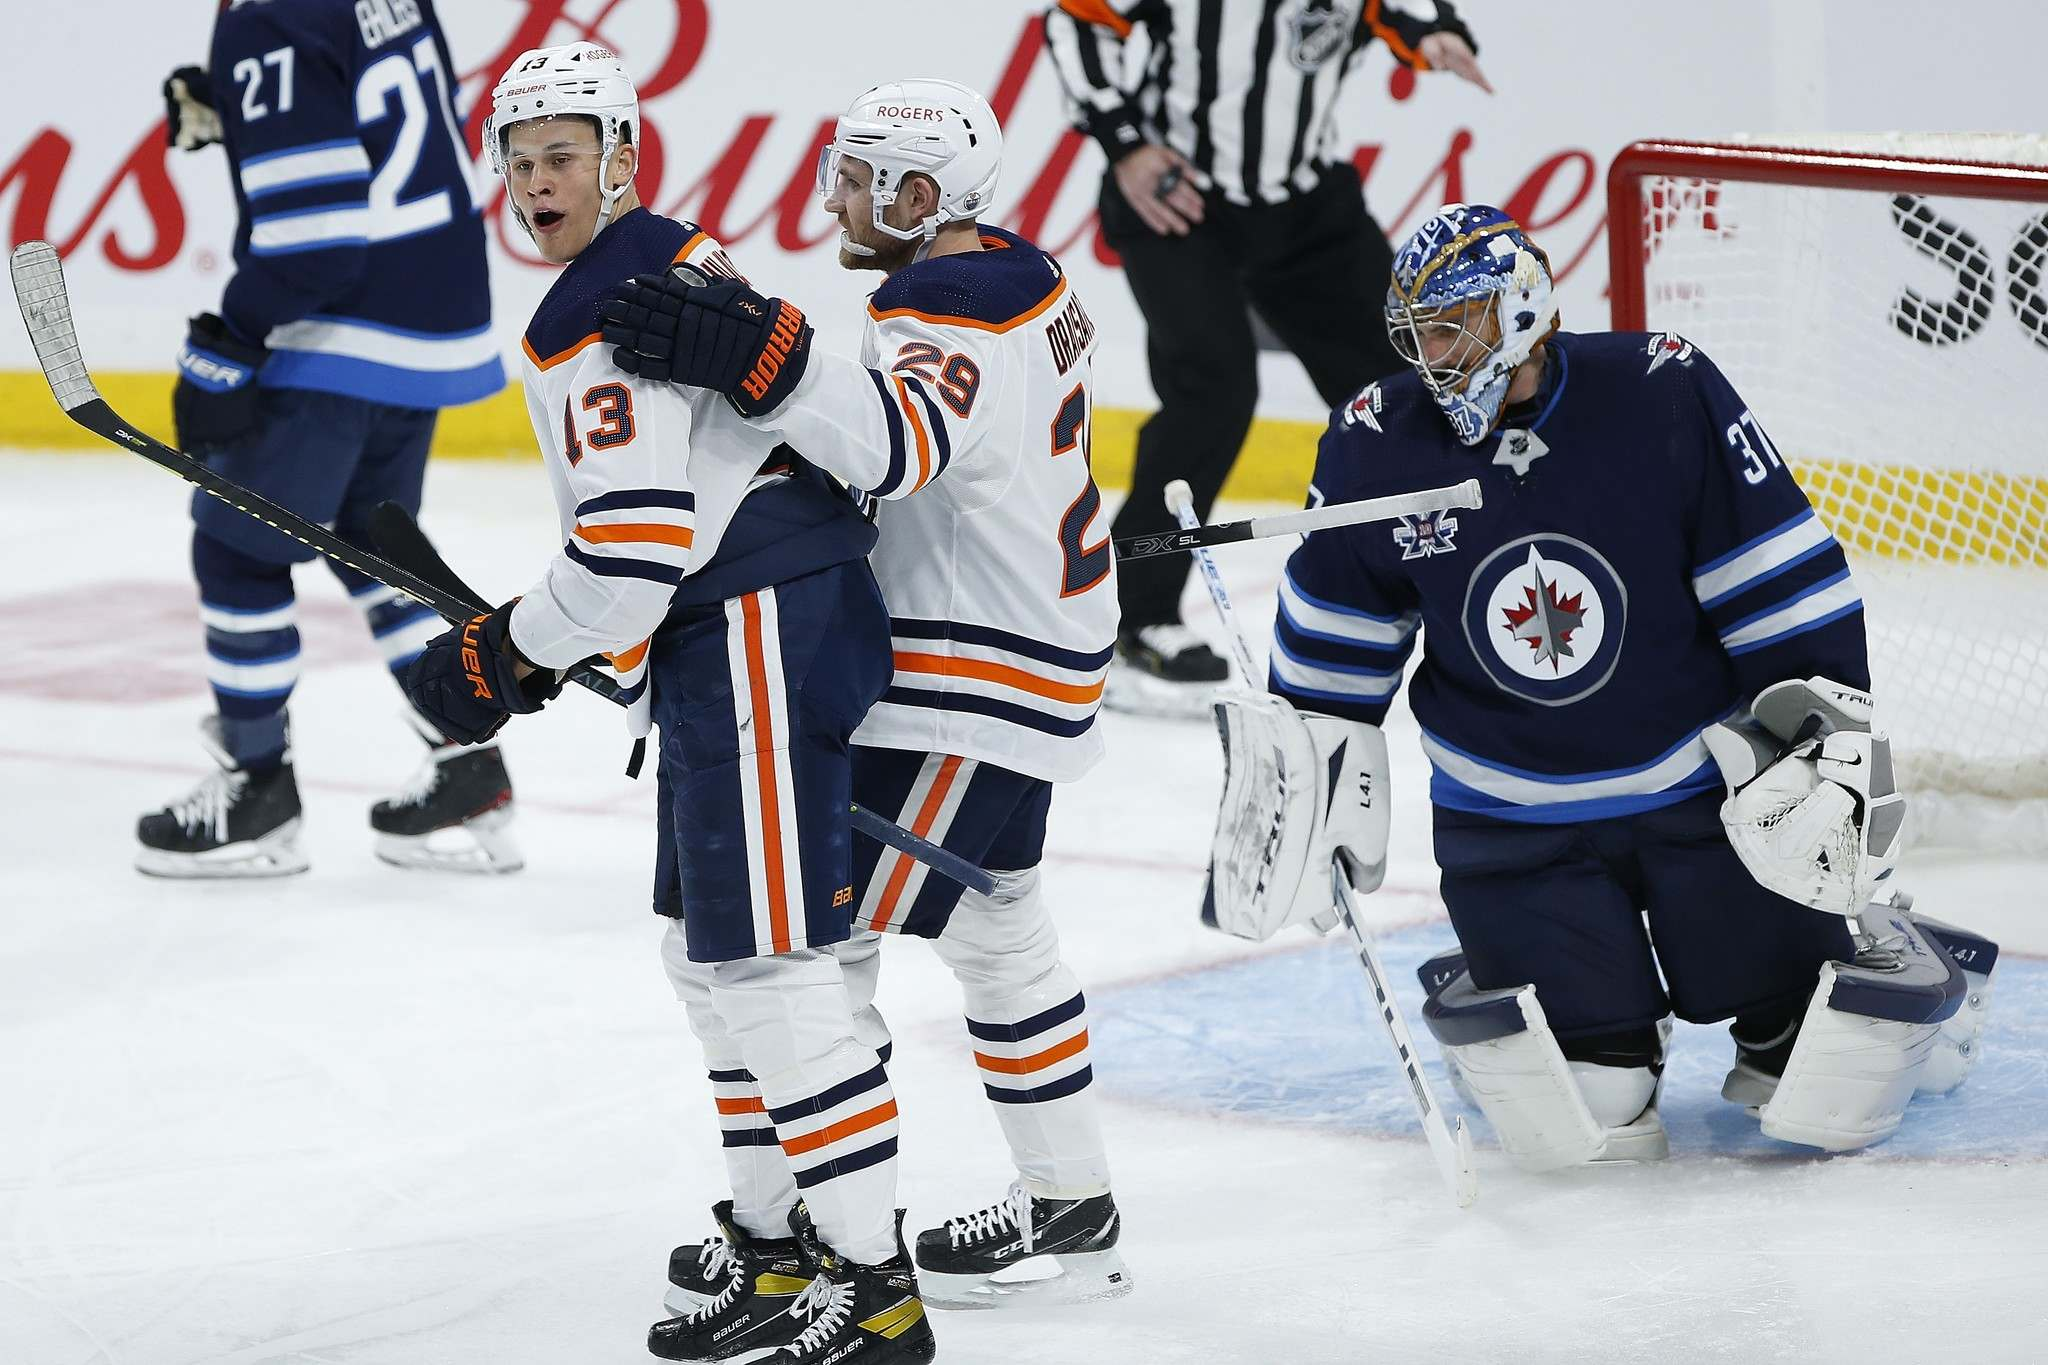 The Edmonton Oilers were the only team on the ice with any energy Saturday night. Jesse Puljujarvi (left) and Leon Draisaitl celebrate Puljujarvi's third-period goal. (John Woods / The Canadian Press files)</p></p>